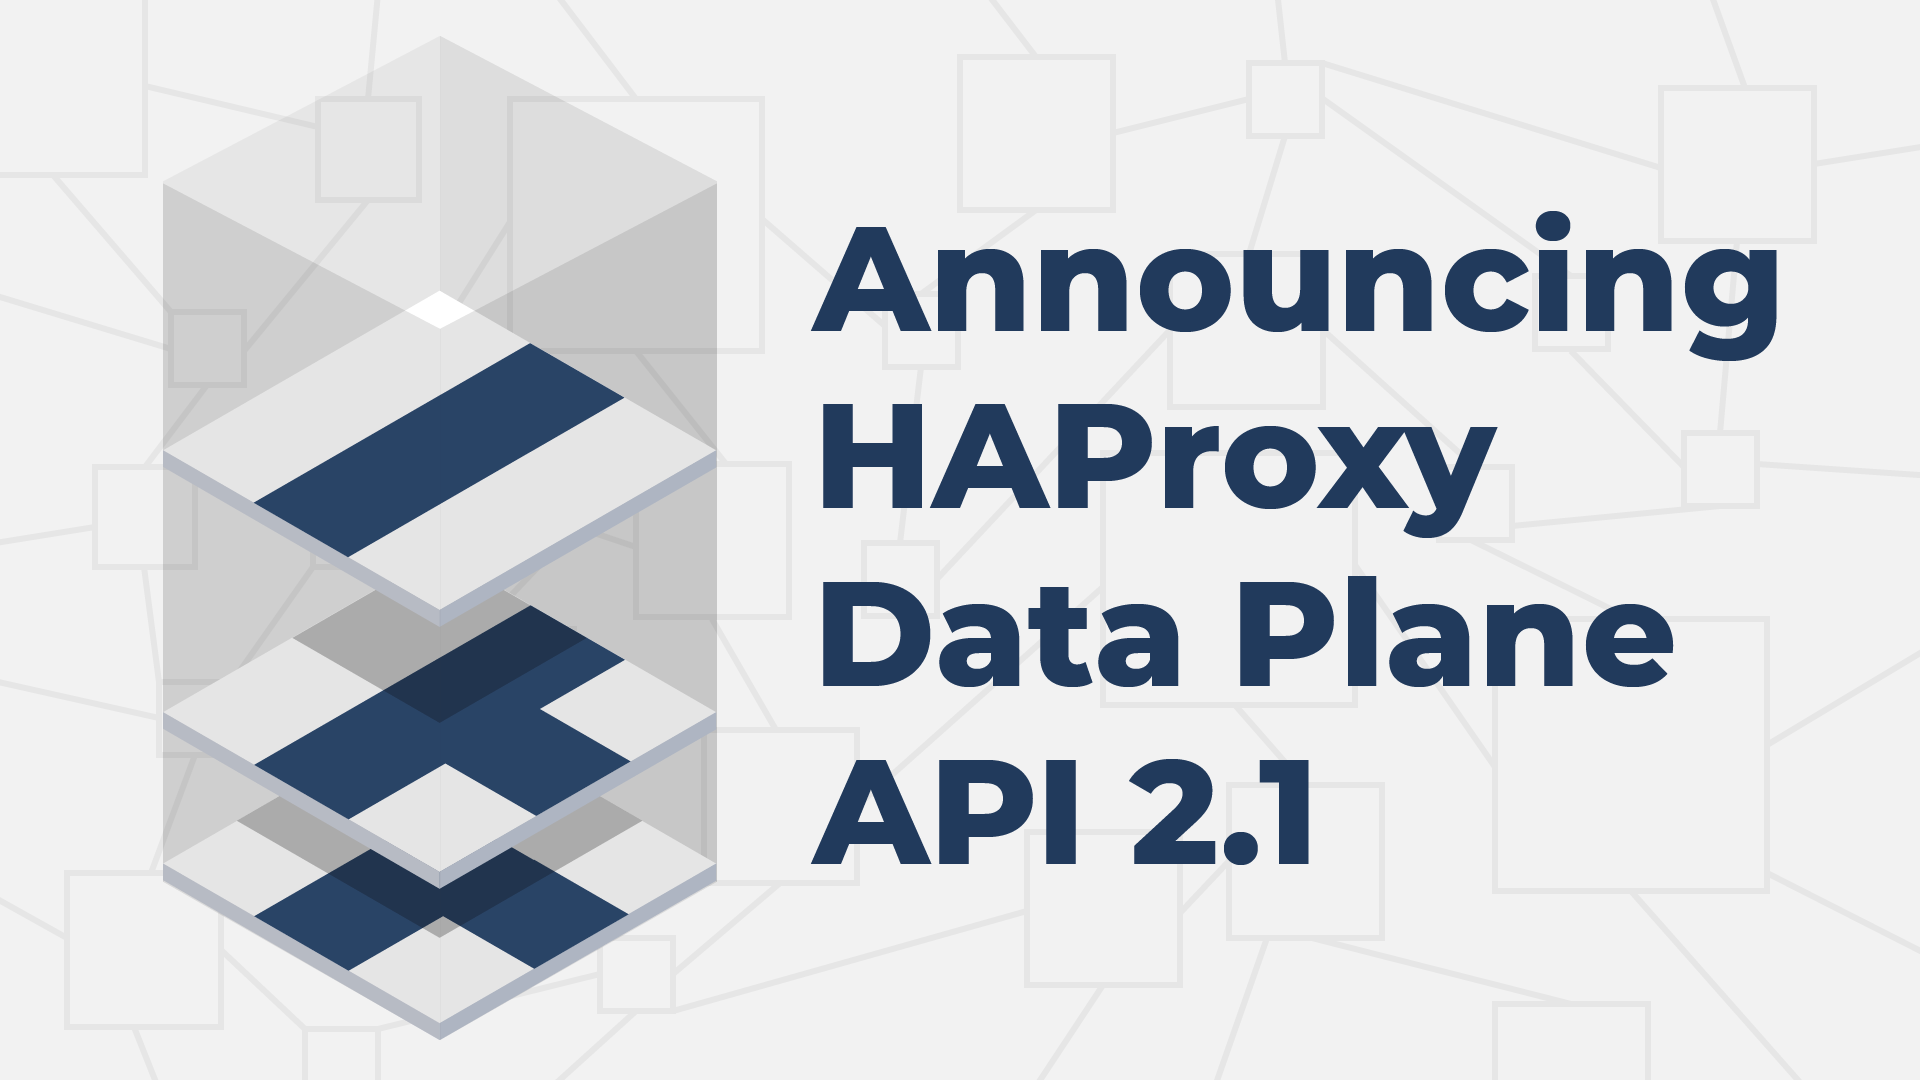 Announcing HAProxy Data Plane API 2.1